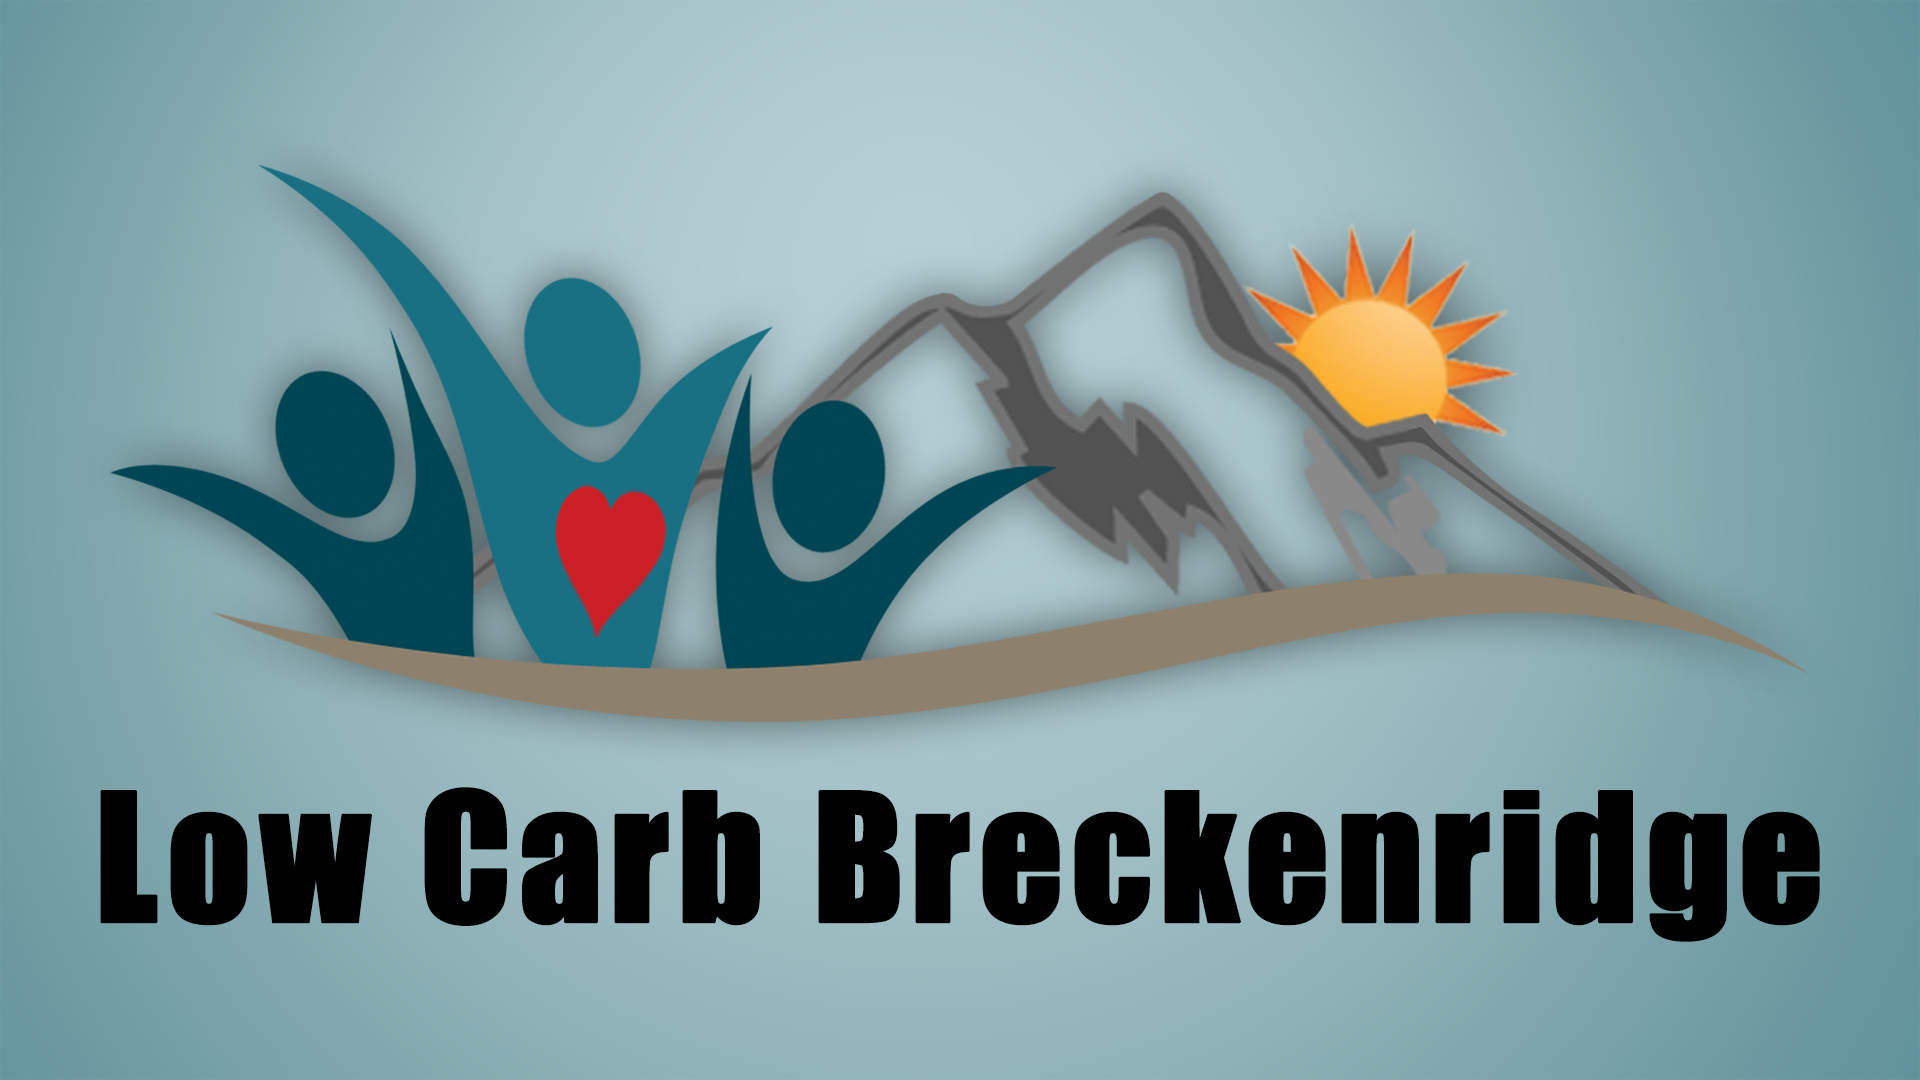 low-carb-breckenridge-2017-larger-logo